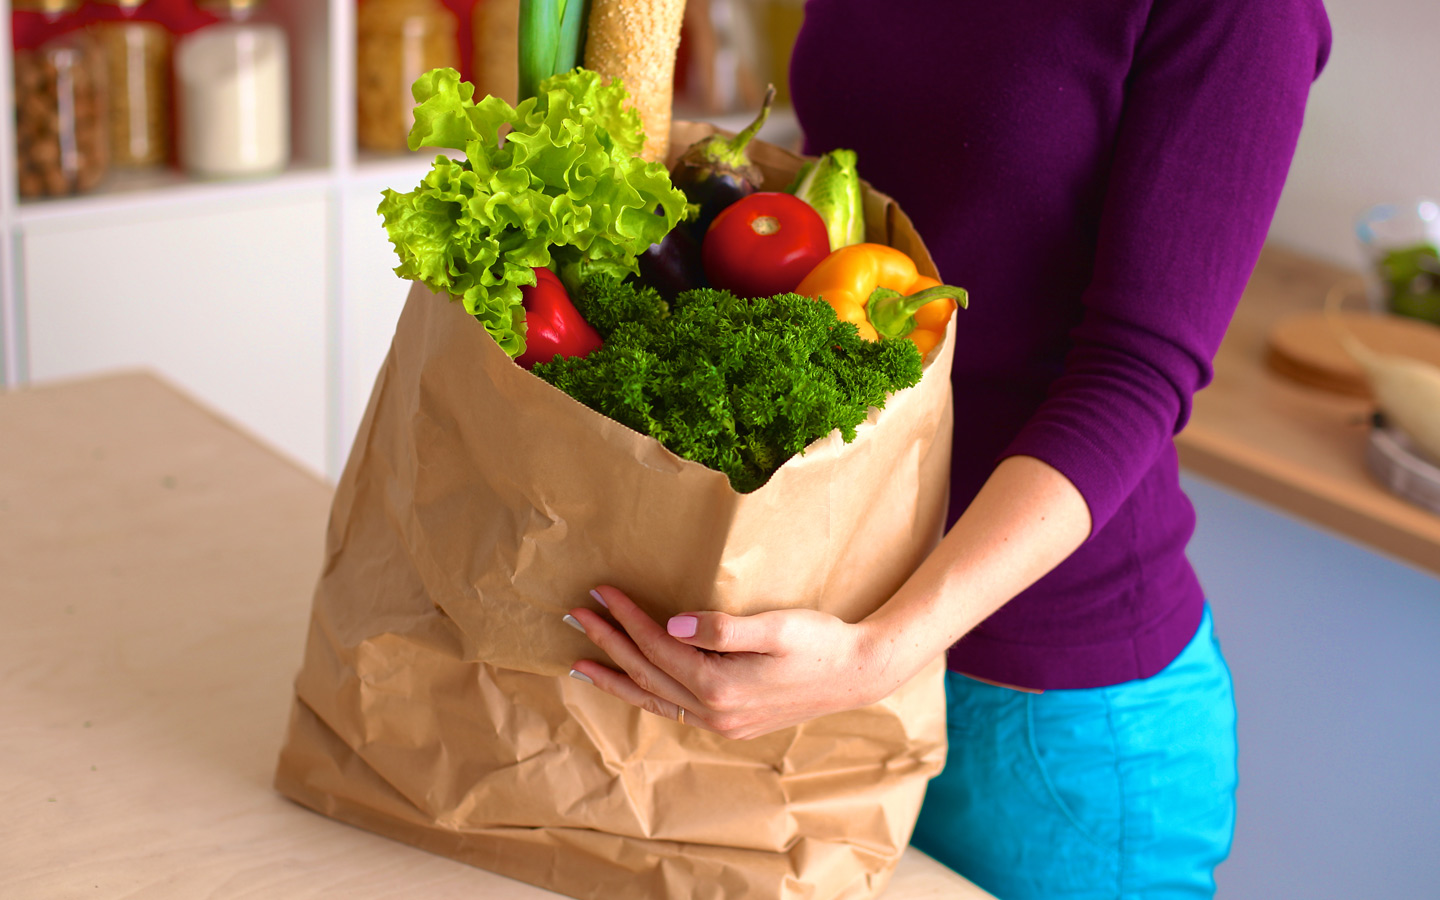 Grocery, El Grocer, apps to make your life more convenient, apps to improve your life